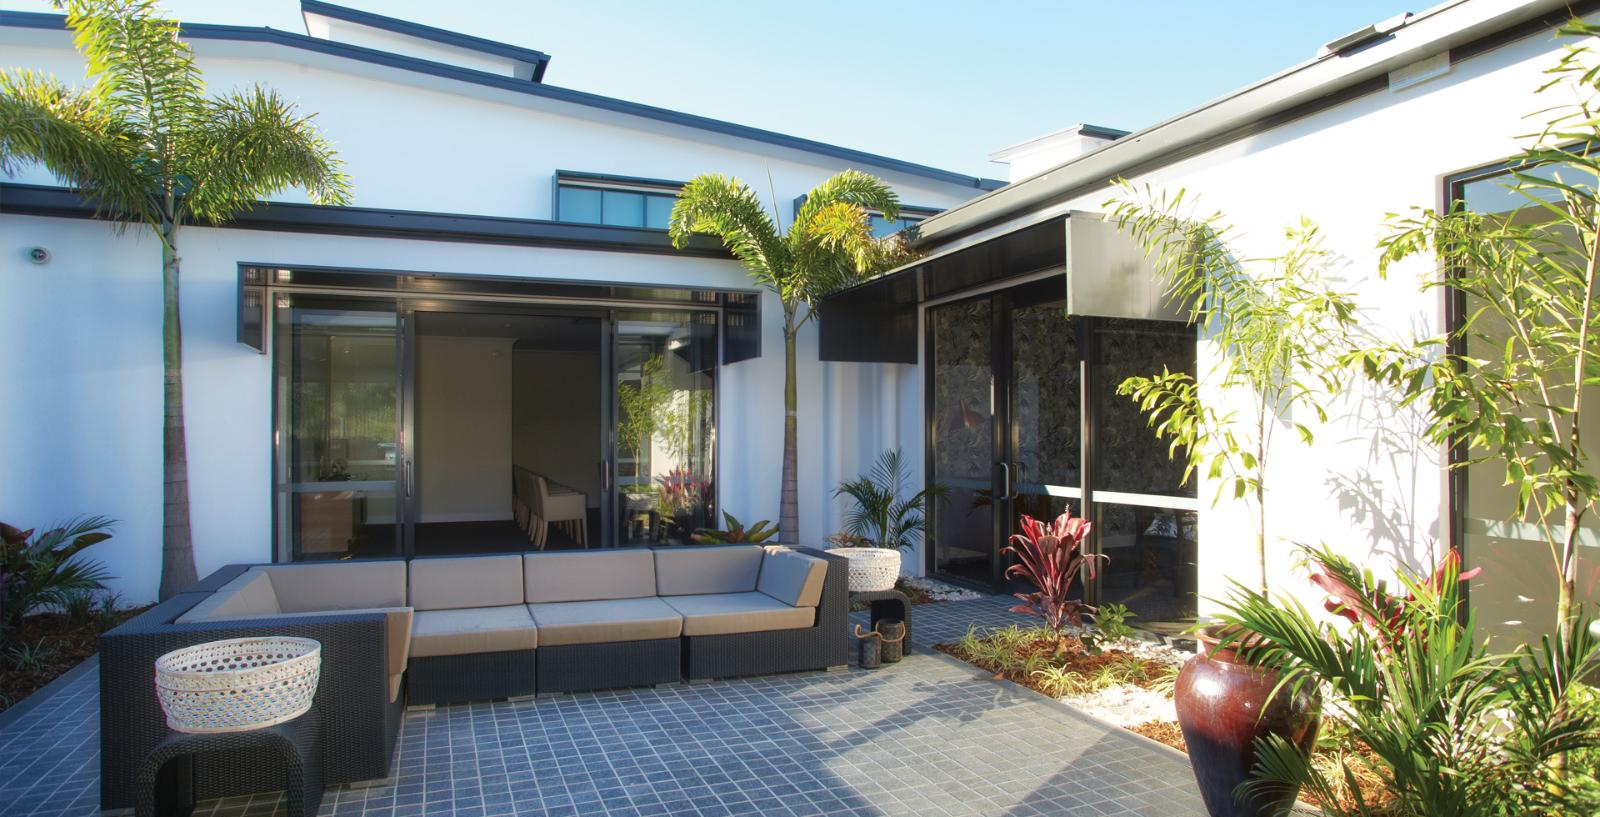 Arcare aged care maroochydore courtyard 01